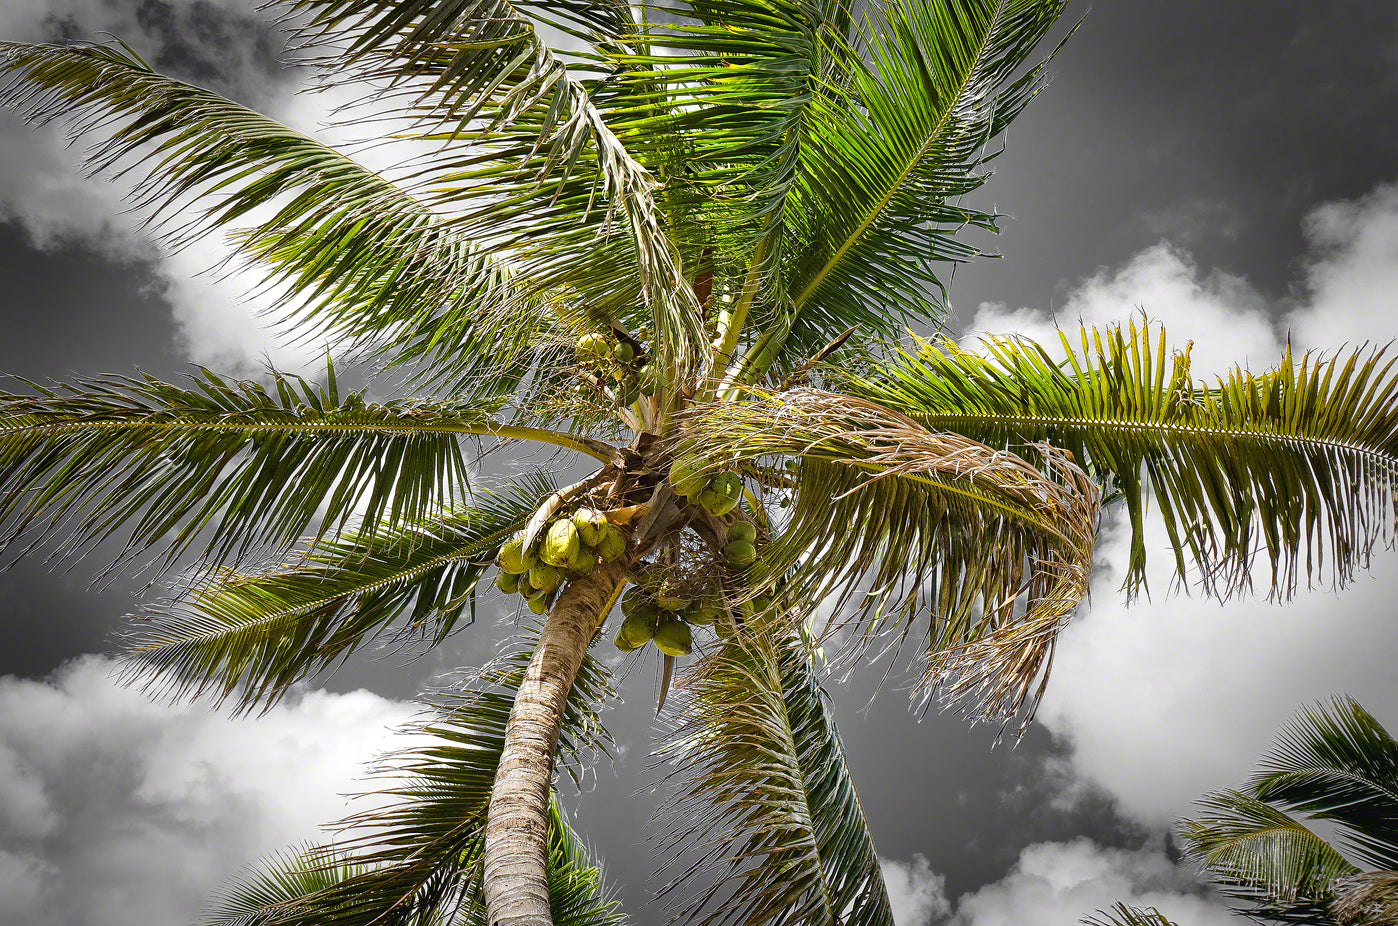 A photo of a coconut tree in the Florida Keys